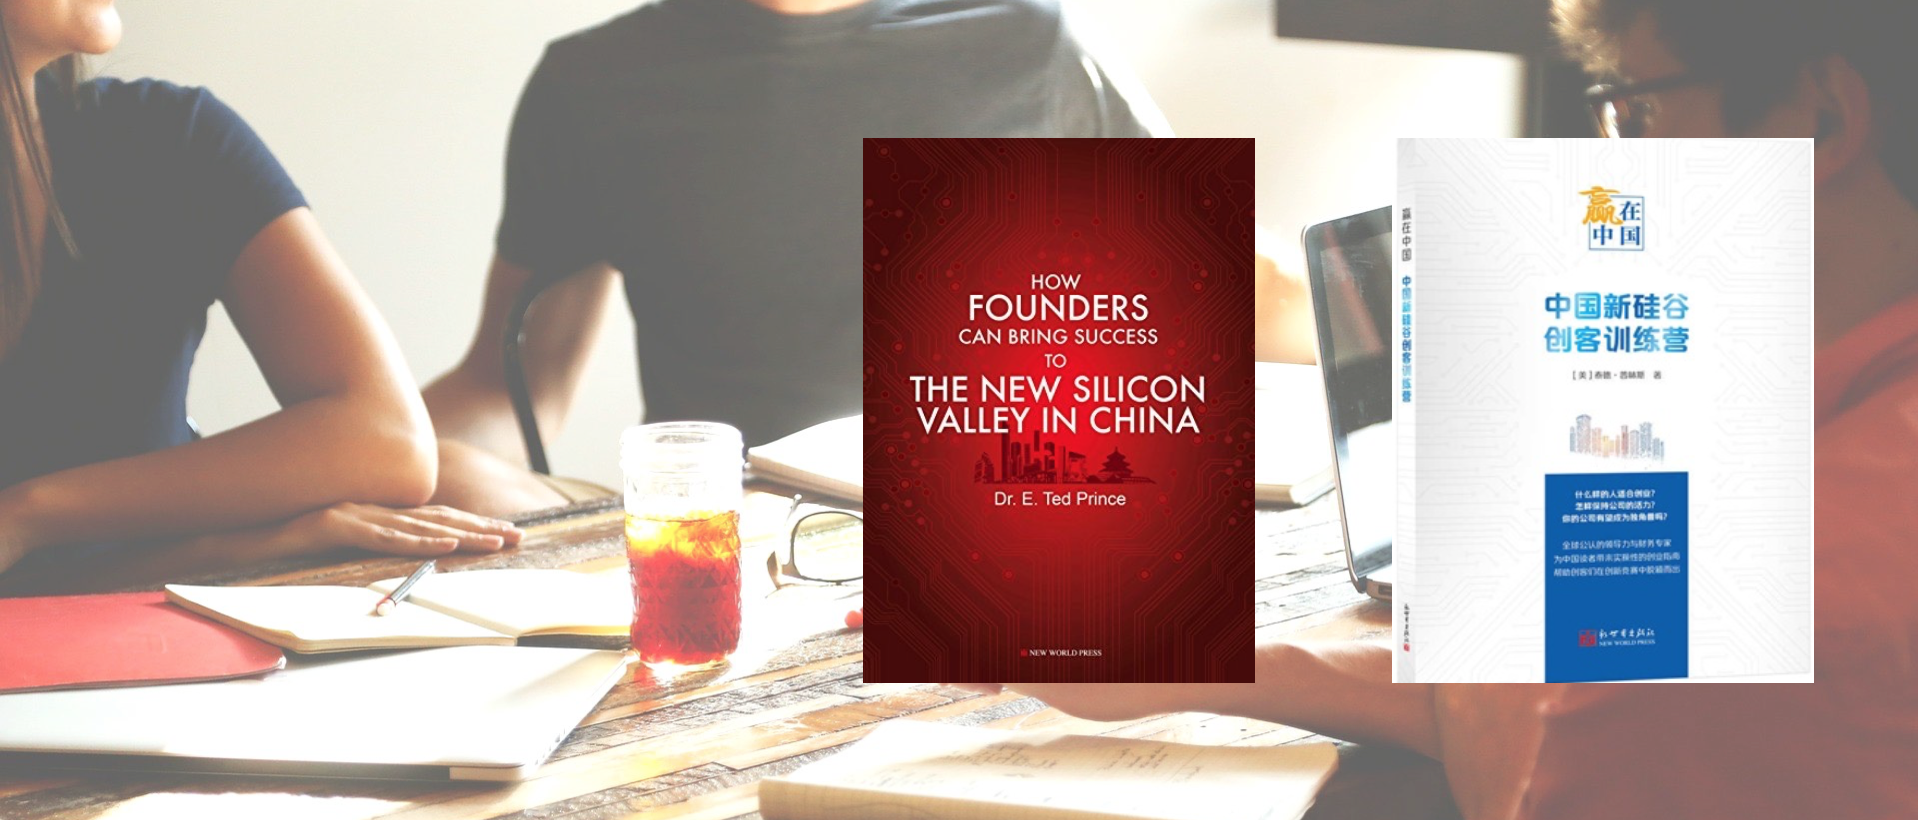 How Founders Can Bring Success to the New Silicon Valley in ChinaAssessment and development of innovators